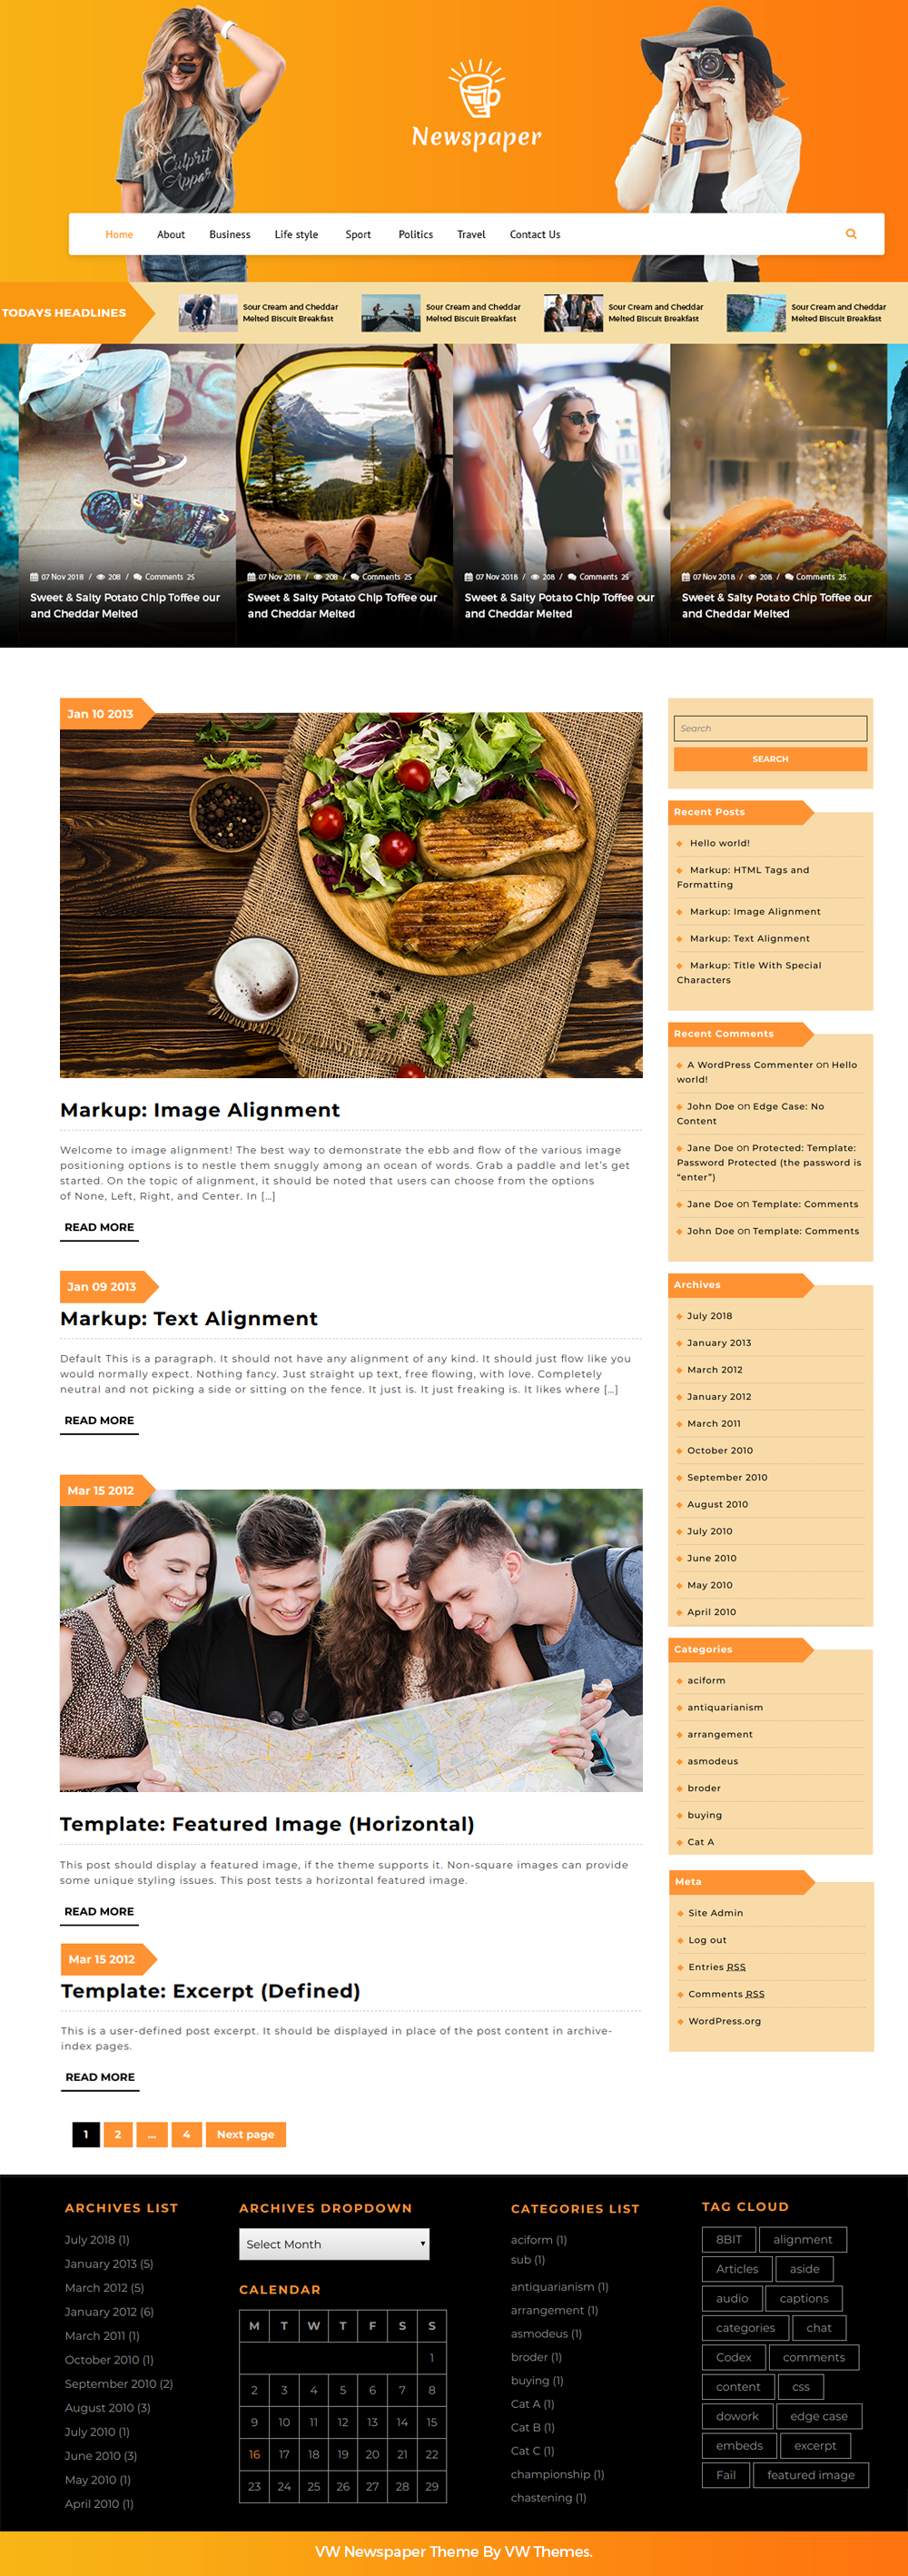 Free Newspaper WordPress Theme